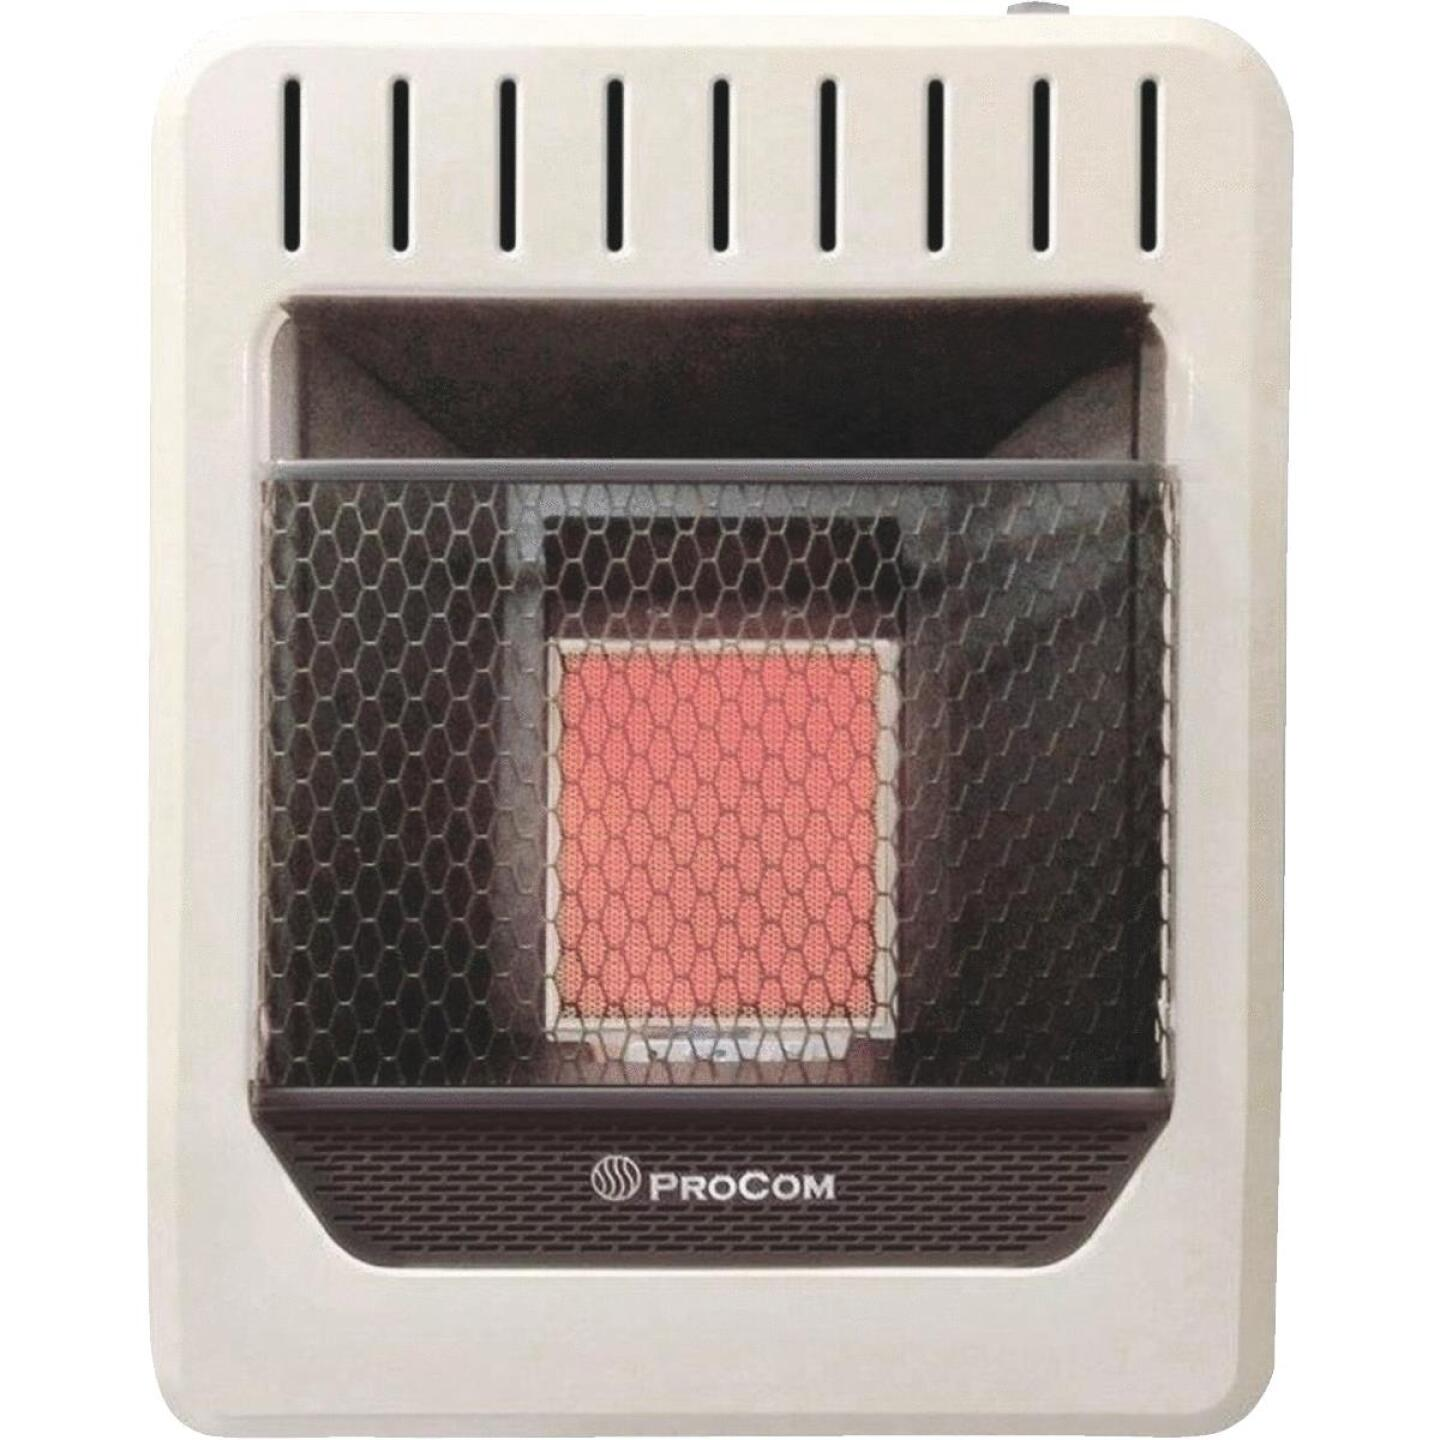 ProCom 10,000 BTU Natural Gas Vent-Free Infrared Plaque Gas Wall Heater Image 1